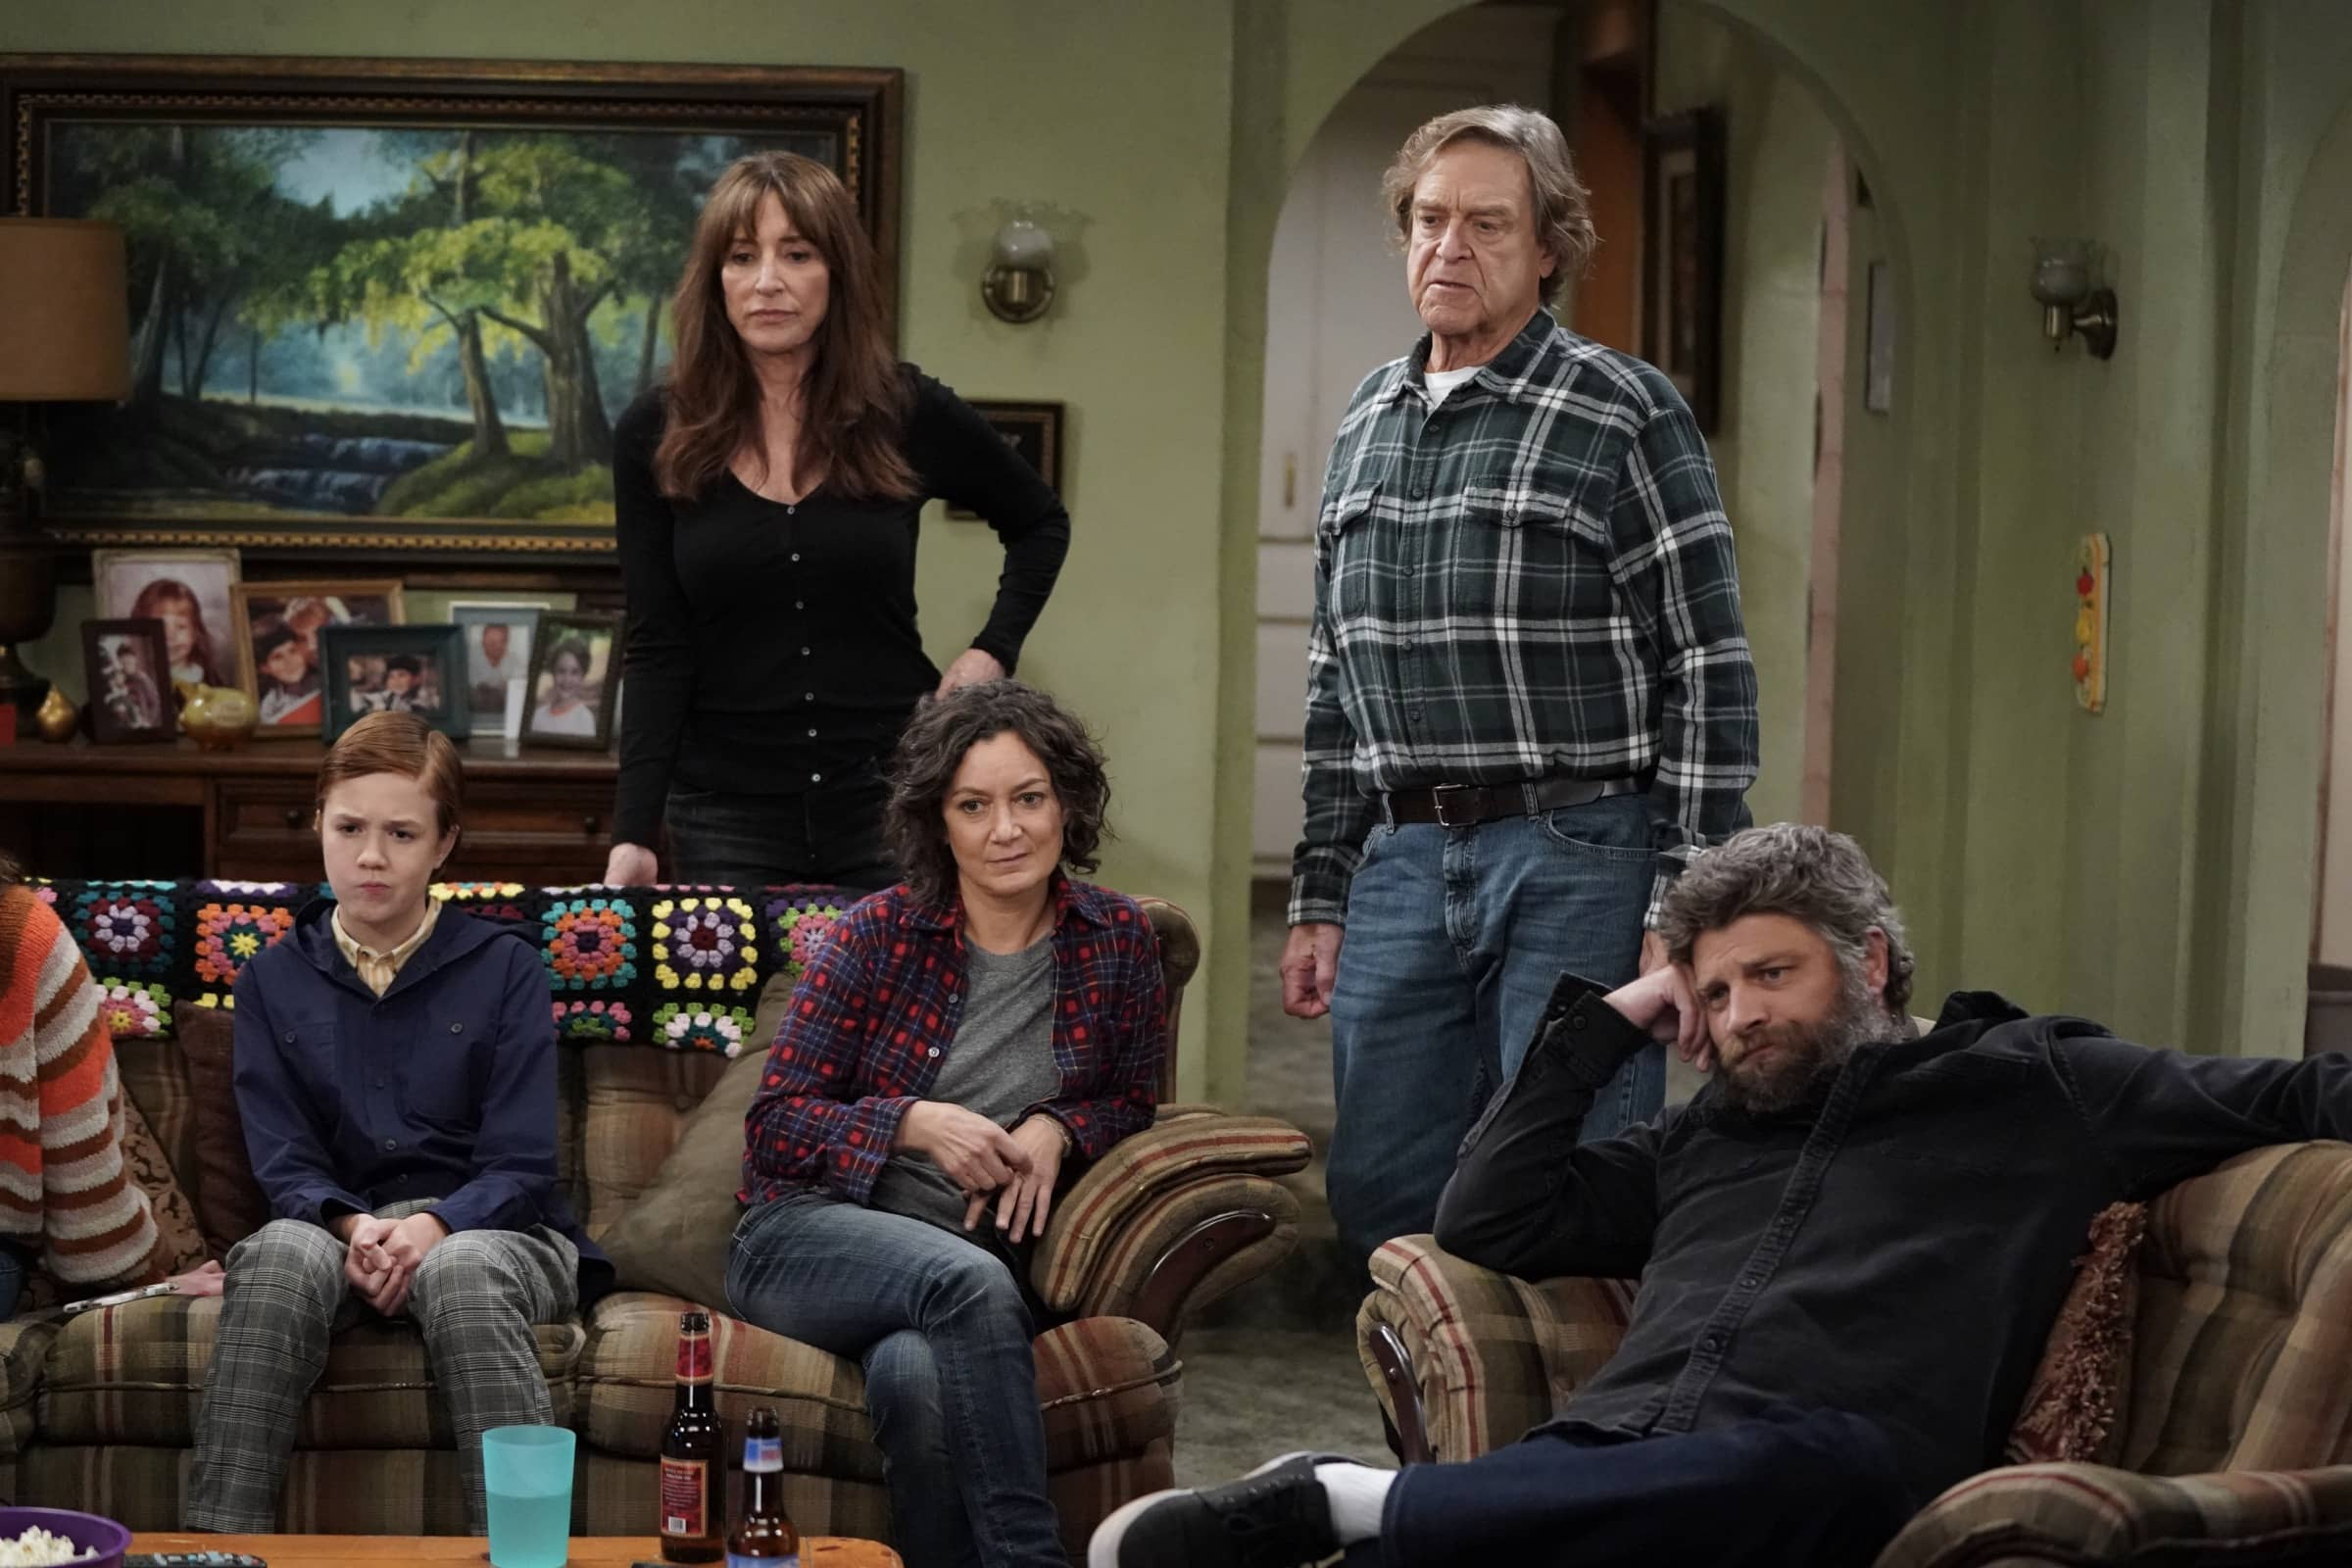 "THE CONNERS - ""Protest, Drug Test and One Leaves the Nest"" – Harris' job is in jeopardy after joining a protest she strongly believes in, leading to tense discussions within the family. Jackie makes a visit to Wellman Plastics only to realize the company is instituting supervised drug testing, inspiring Becky to lead her own protest on an all-new episode of ""The Conners,"" WEDNESDAY, DEC. 2 (9:00-9:30 p.m. EST), on ABC. (ABC/Eric McCandless) AMES MCNAMARA, KATEY SAGAL, SARA GILBERT, JOHN GOODMAN, JAY R. FERGUSON"